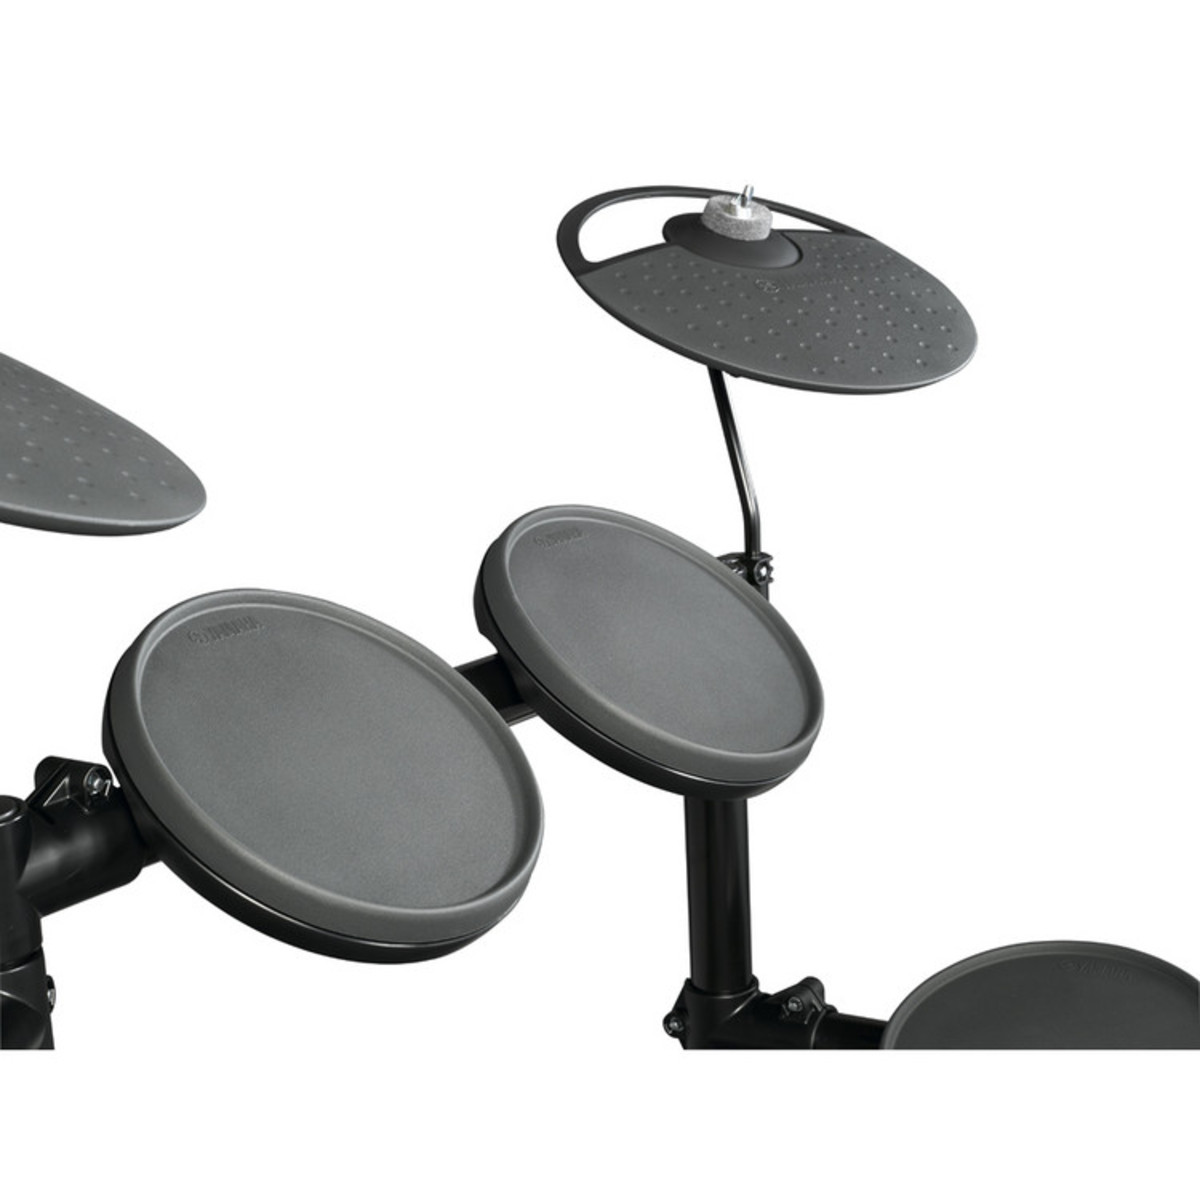 Yamaha dtx450k electronic drum kit nearly new at for Yamaha drum pads